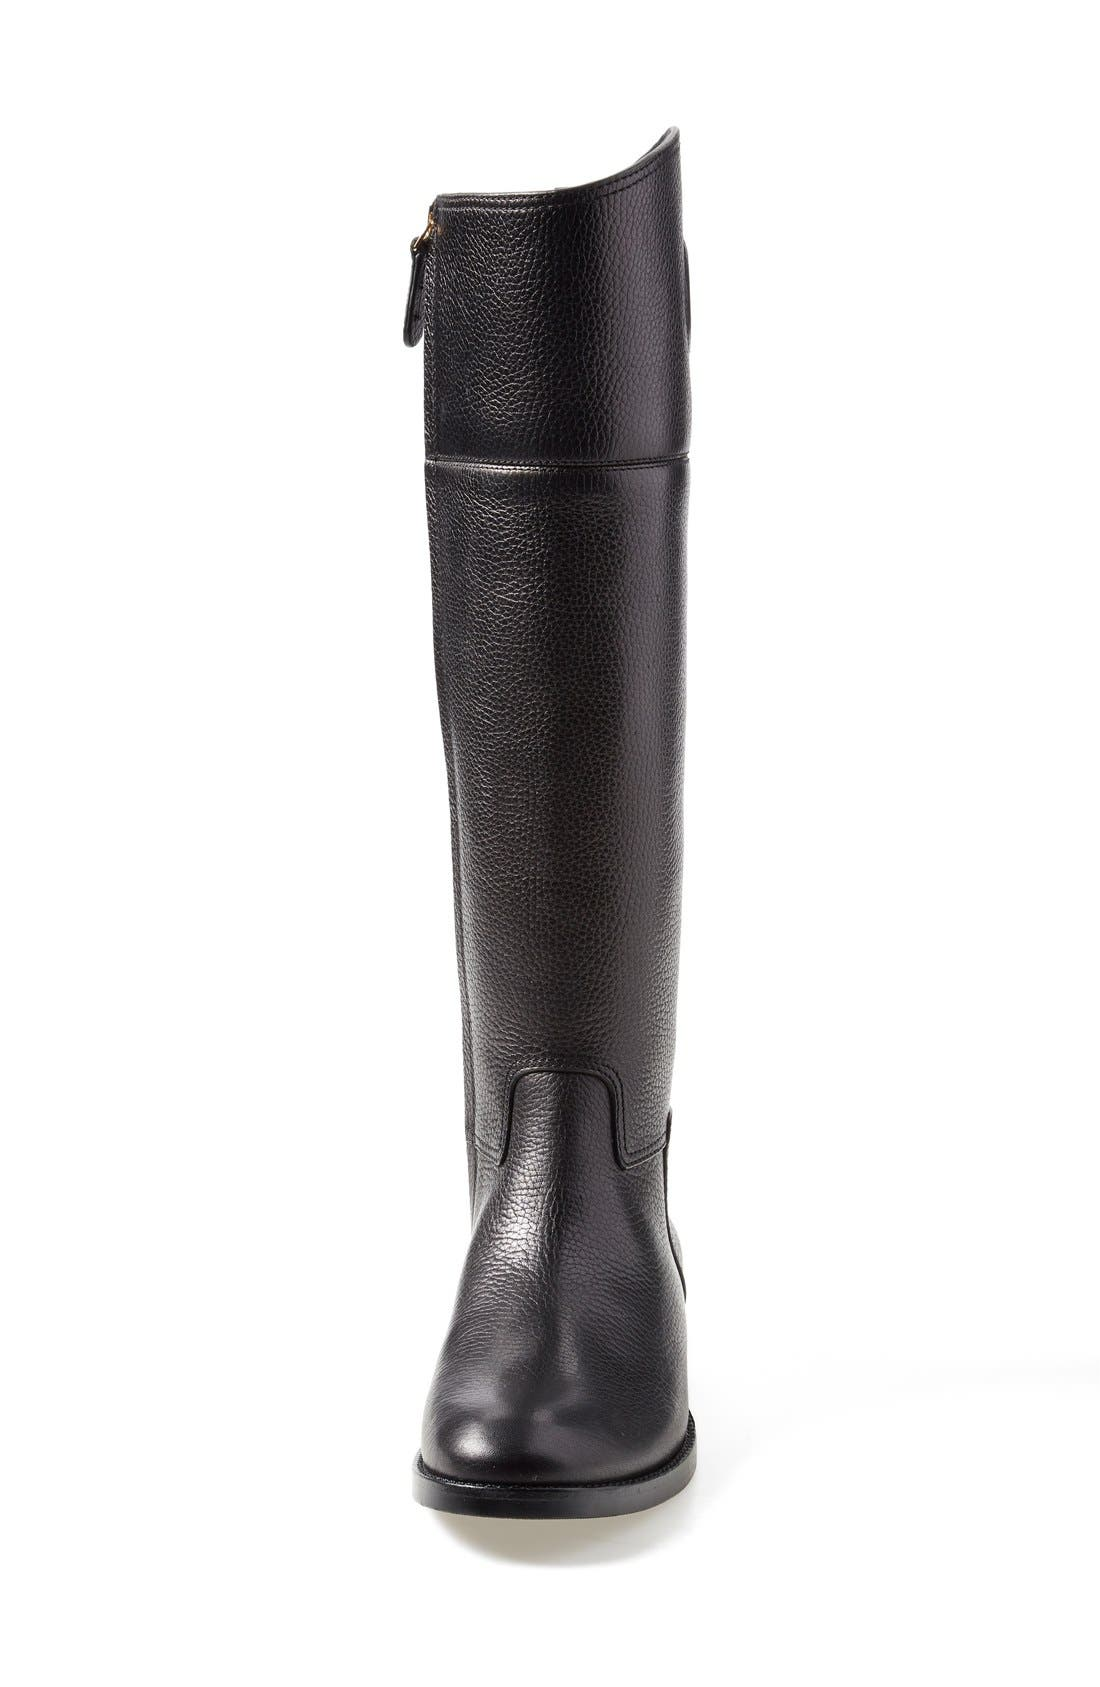 TORY BURCH,                             'Junction' Riding Boot,                             Alternate thumbnail 2, color,                             001